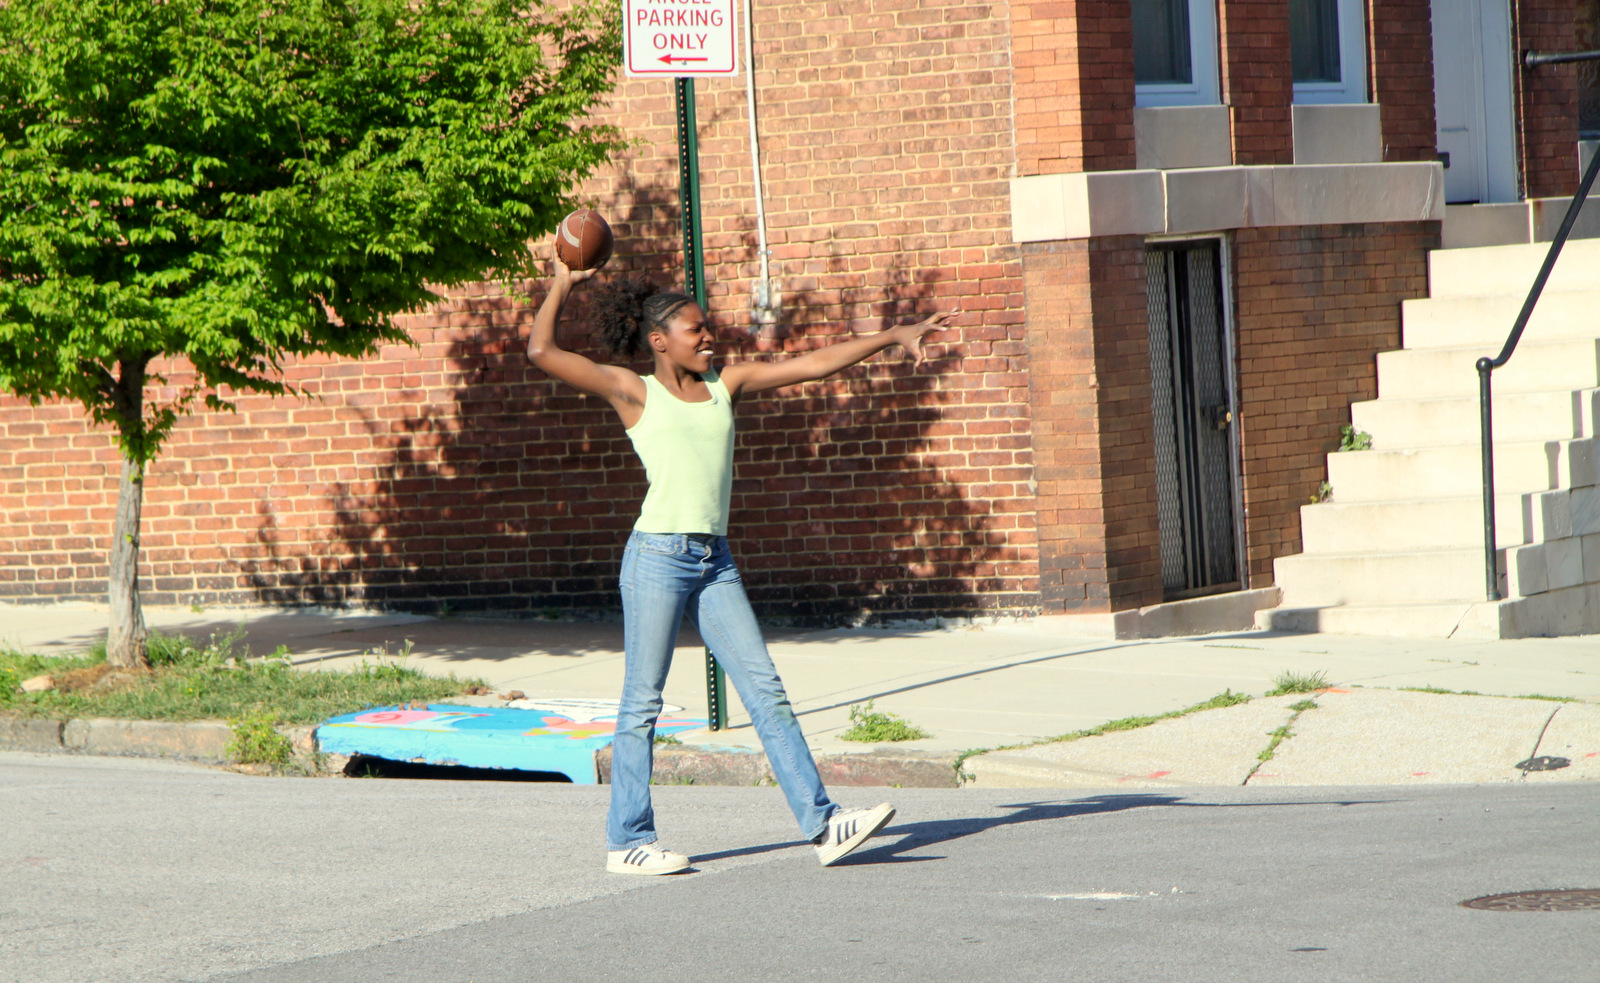 Tossing a ball at intersection of Boone and 21st  streets. (Photo by Fern Shen)